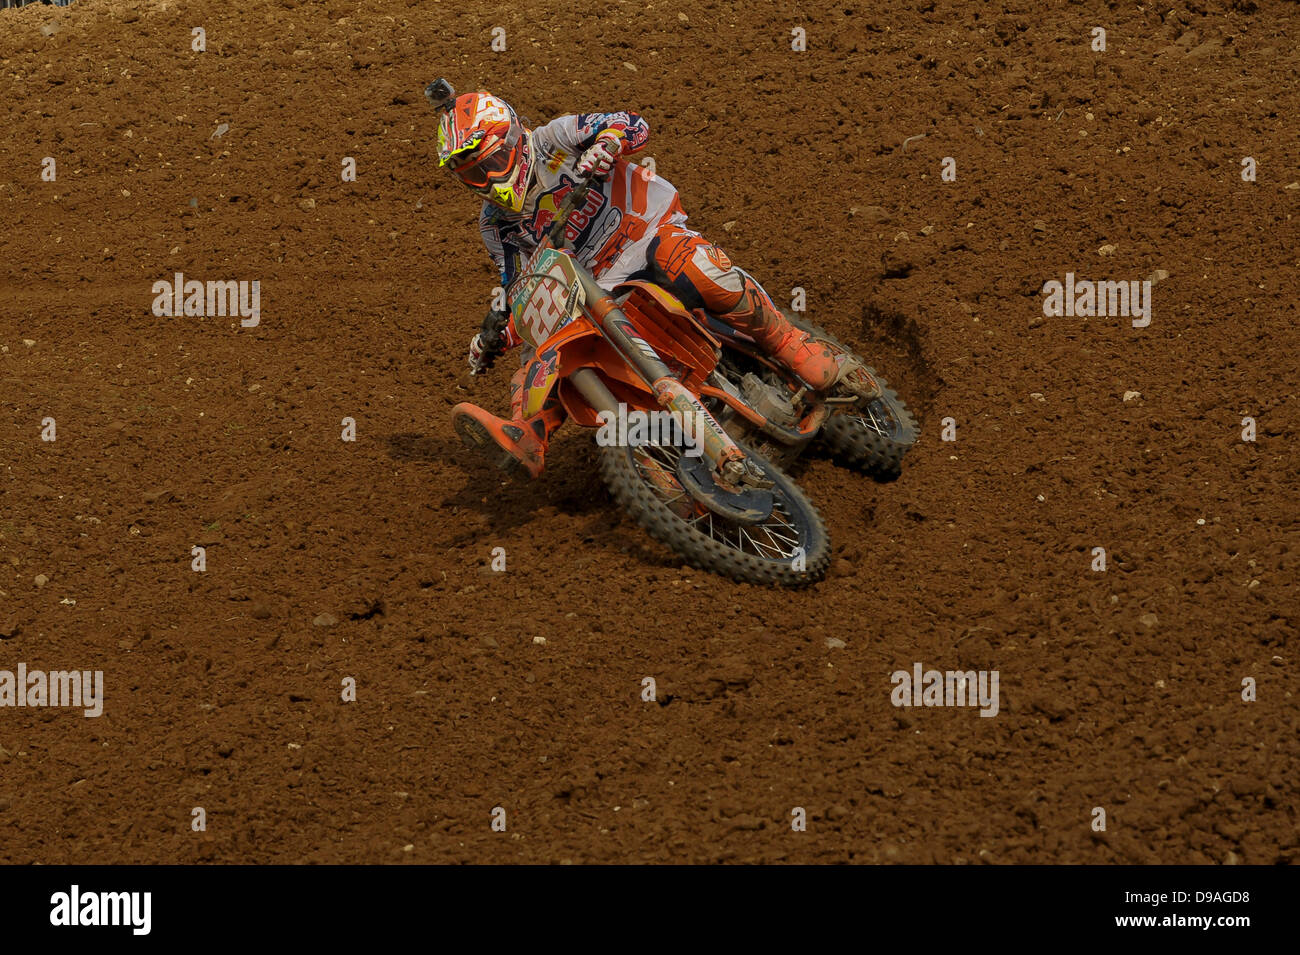 Maggiora, Italy.  during the MX1  World Motocross  Championships from Maggiora. Credit:  Gaetano Piazzolla/Alamy Live News Stock Photo